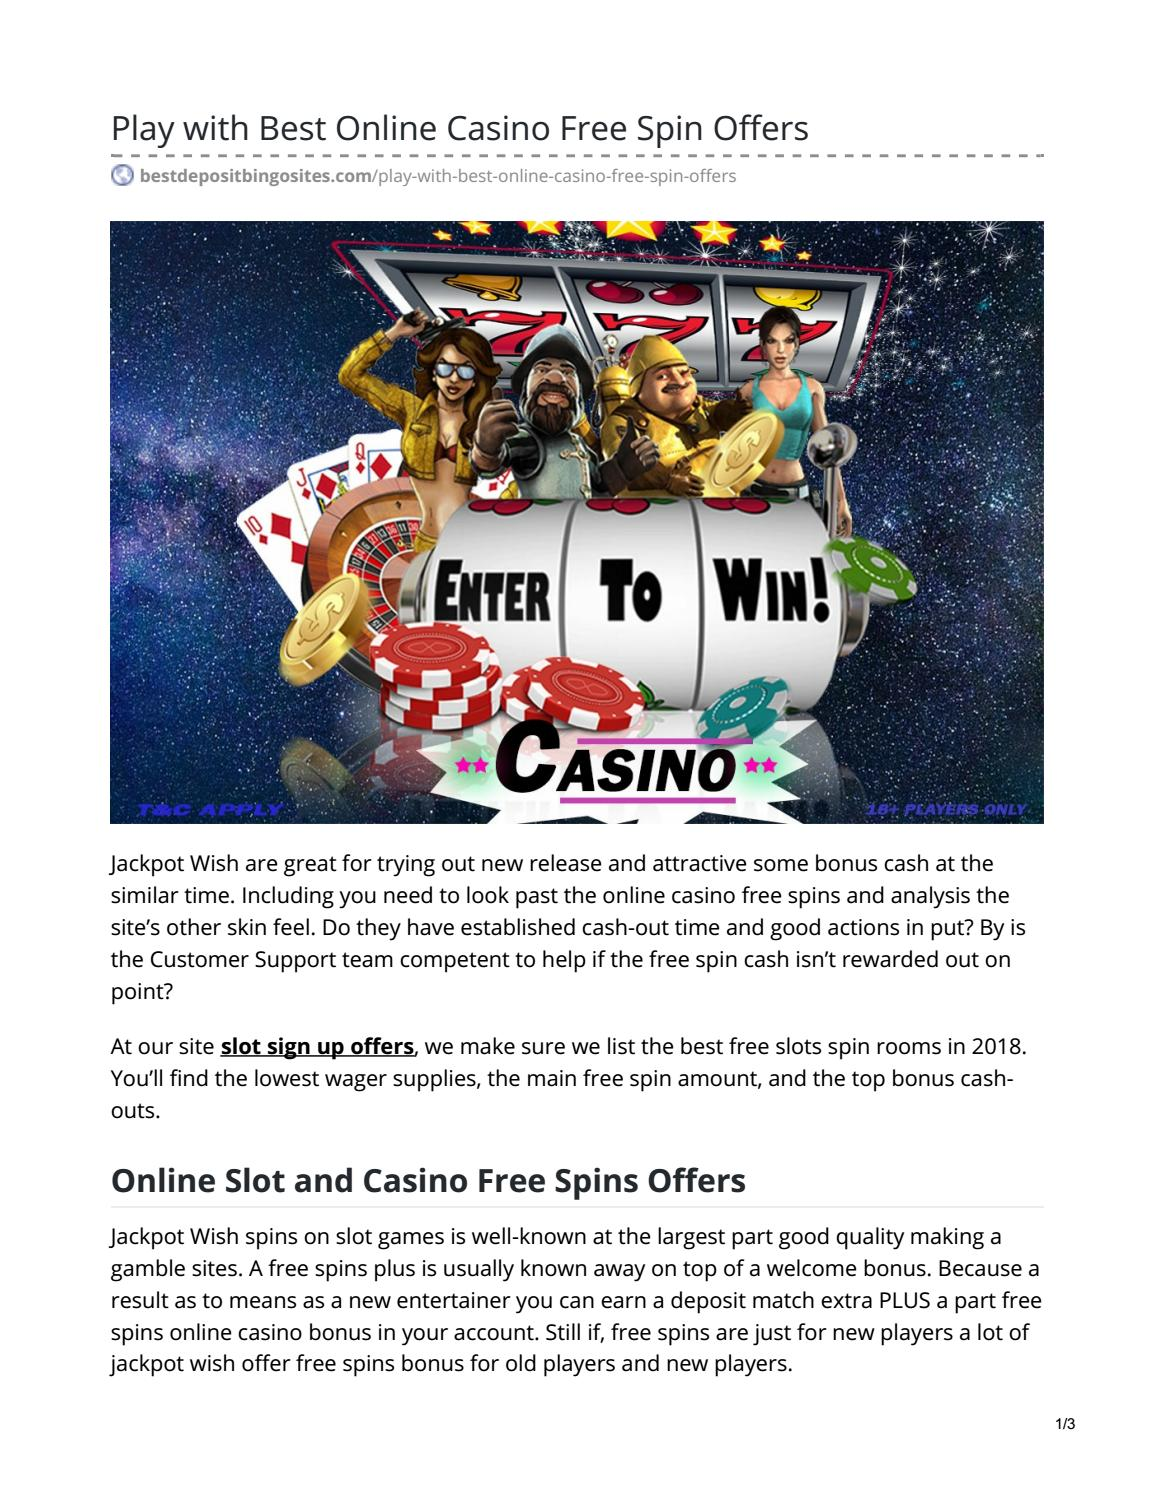 Play With Best Online Casino Free Spin Offers By Mohit Sharma Issuu